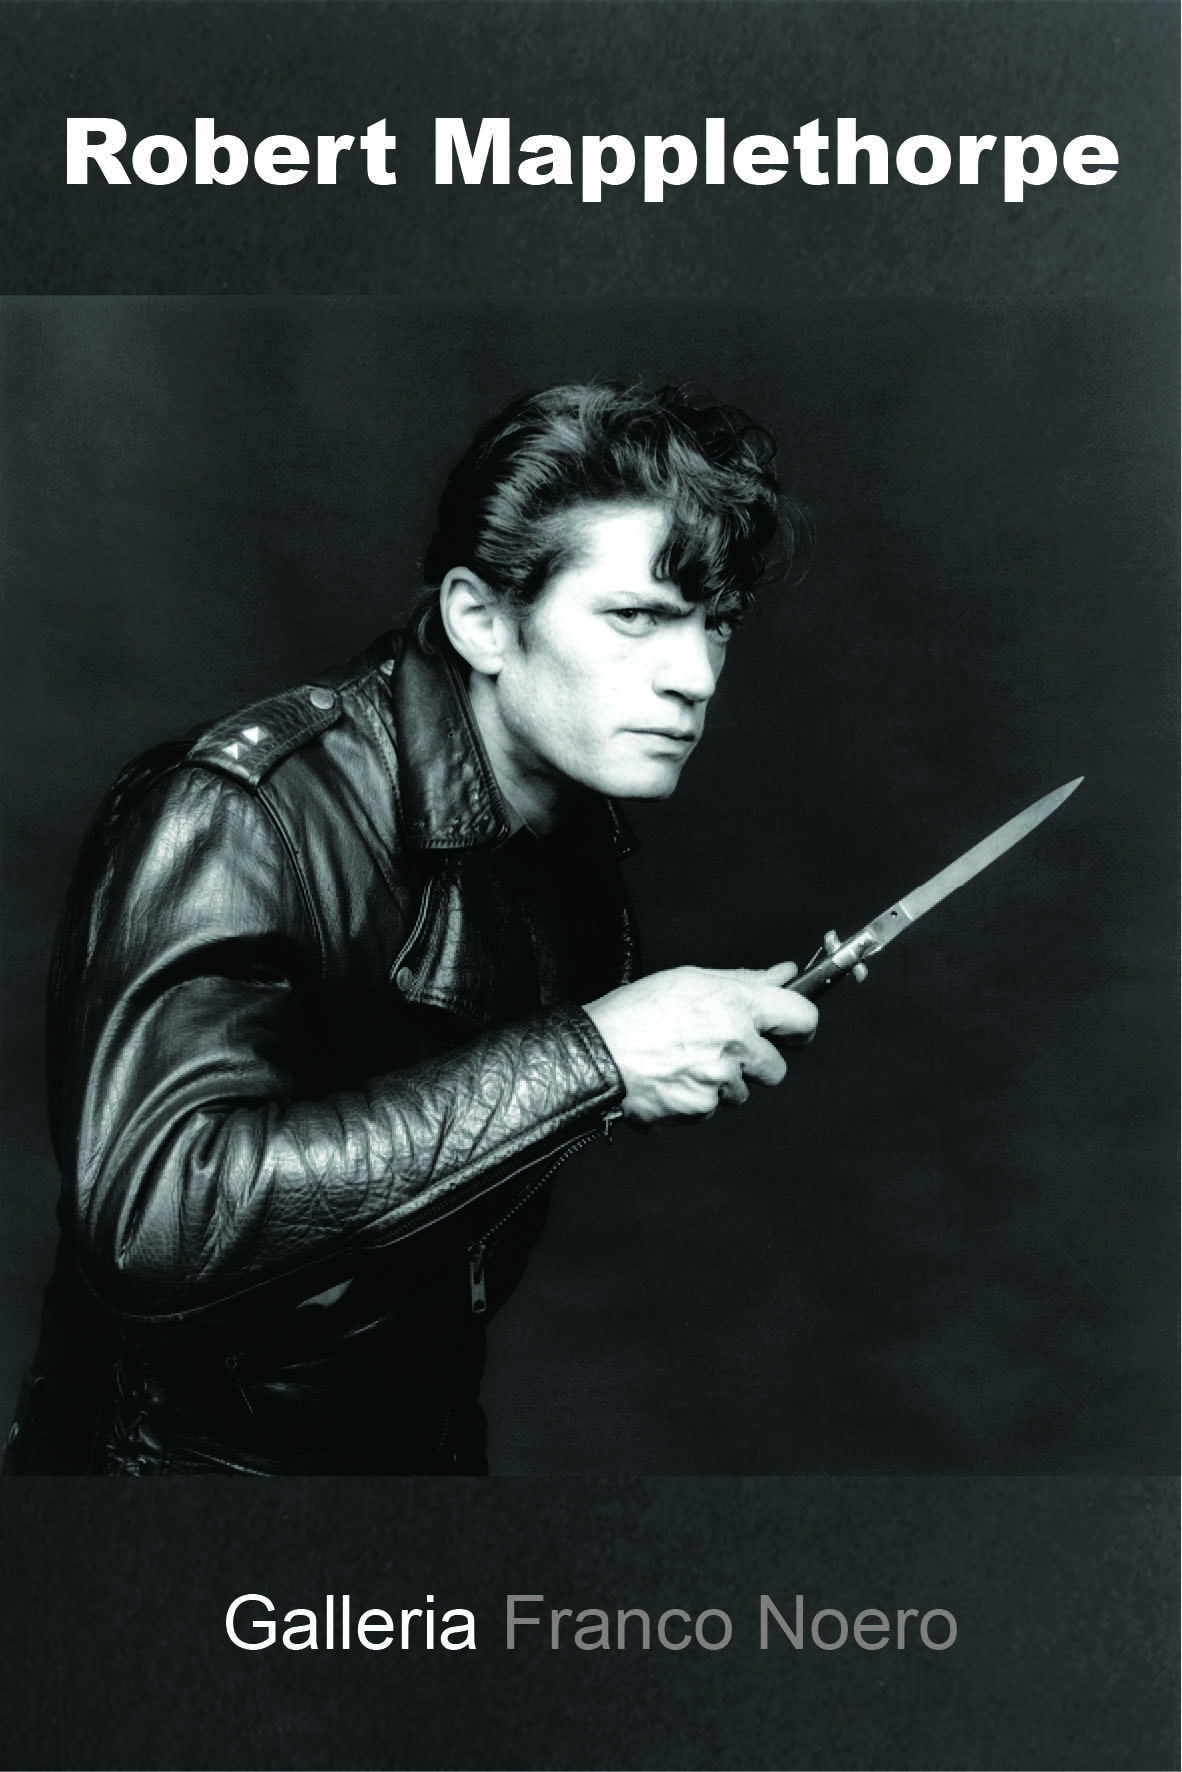 Robert Mapplethorpe © R. Mapplethorpe Foundation / Galleria Franco Noero